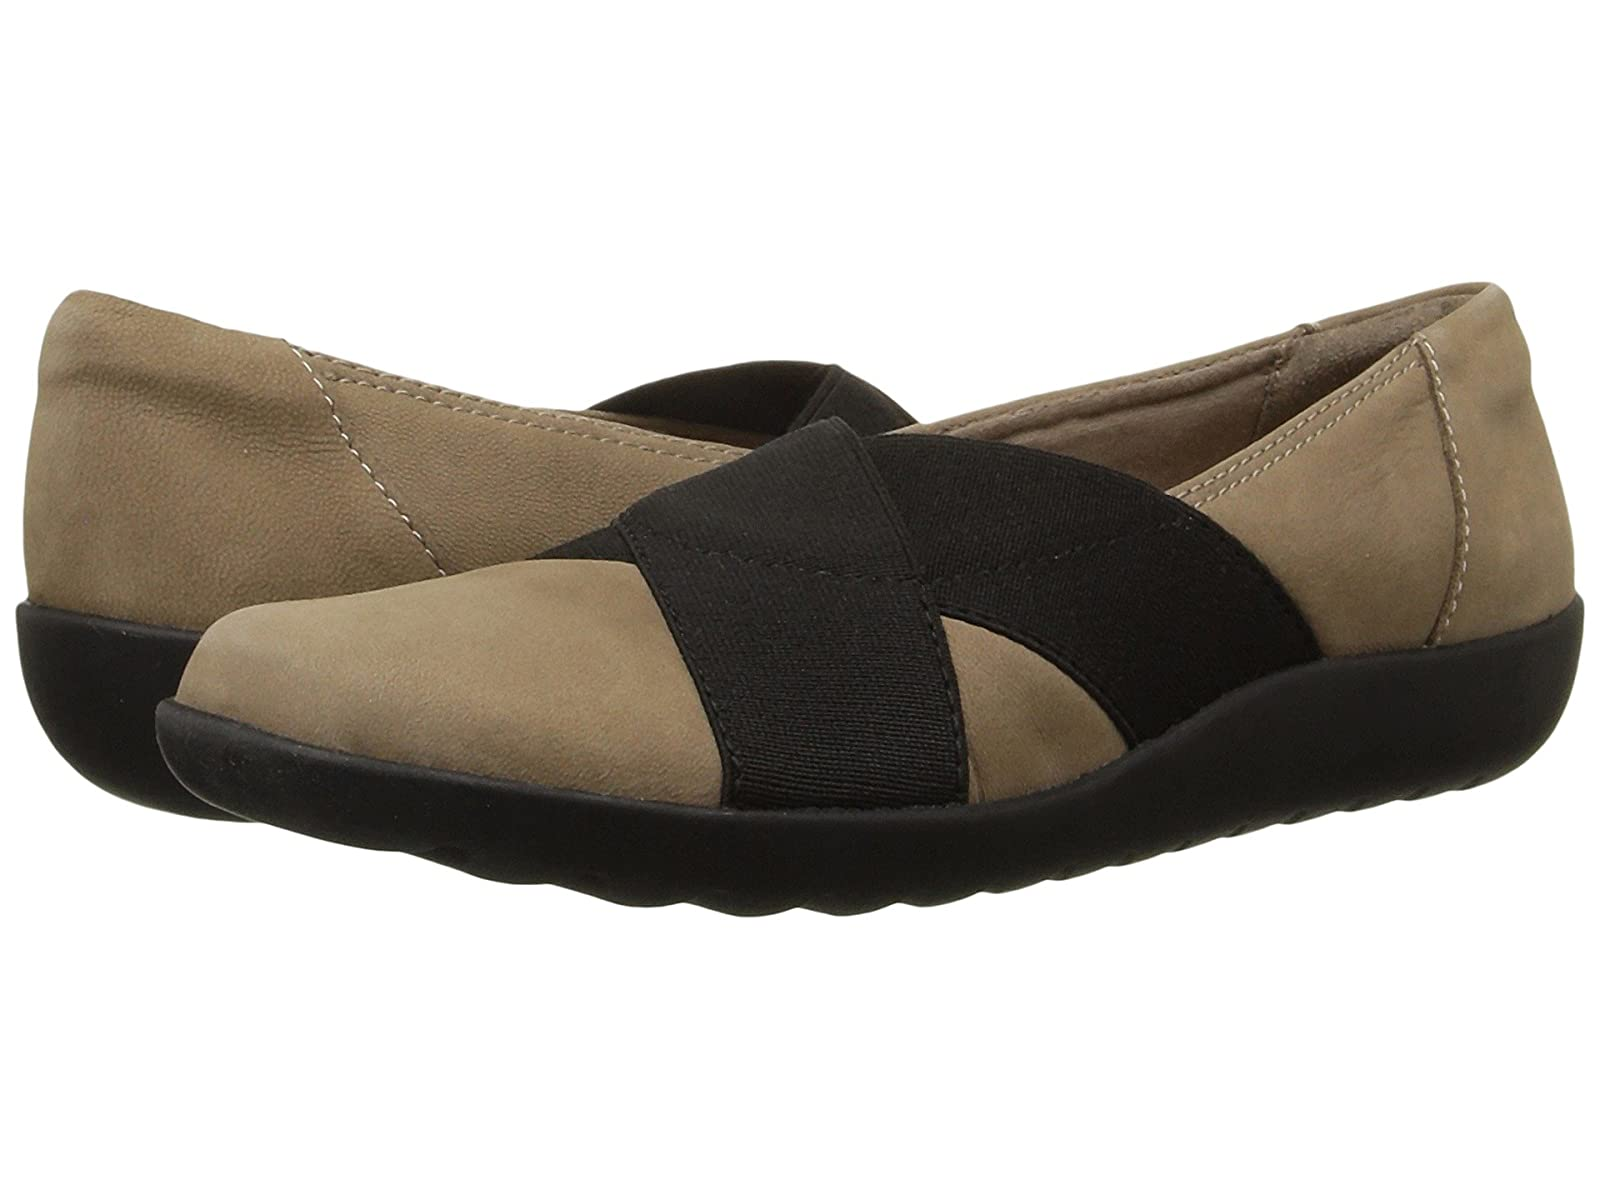 Clarks Medora JemCheap and distinctive eye-catching shoes